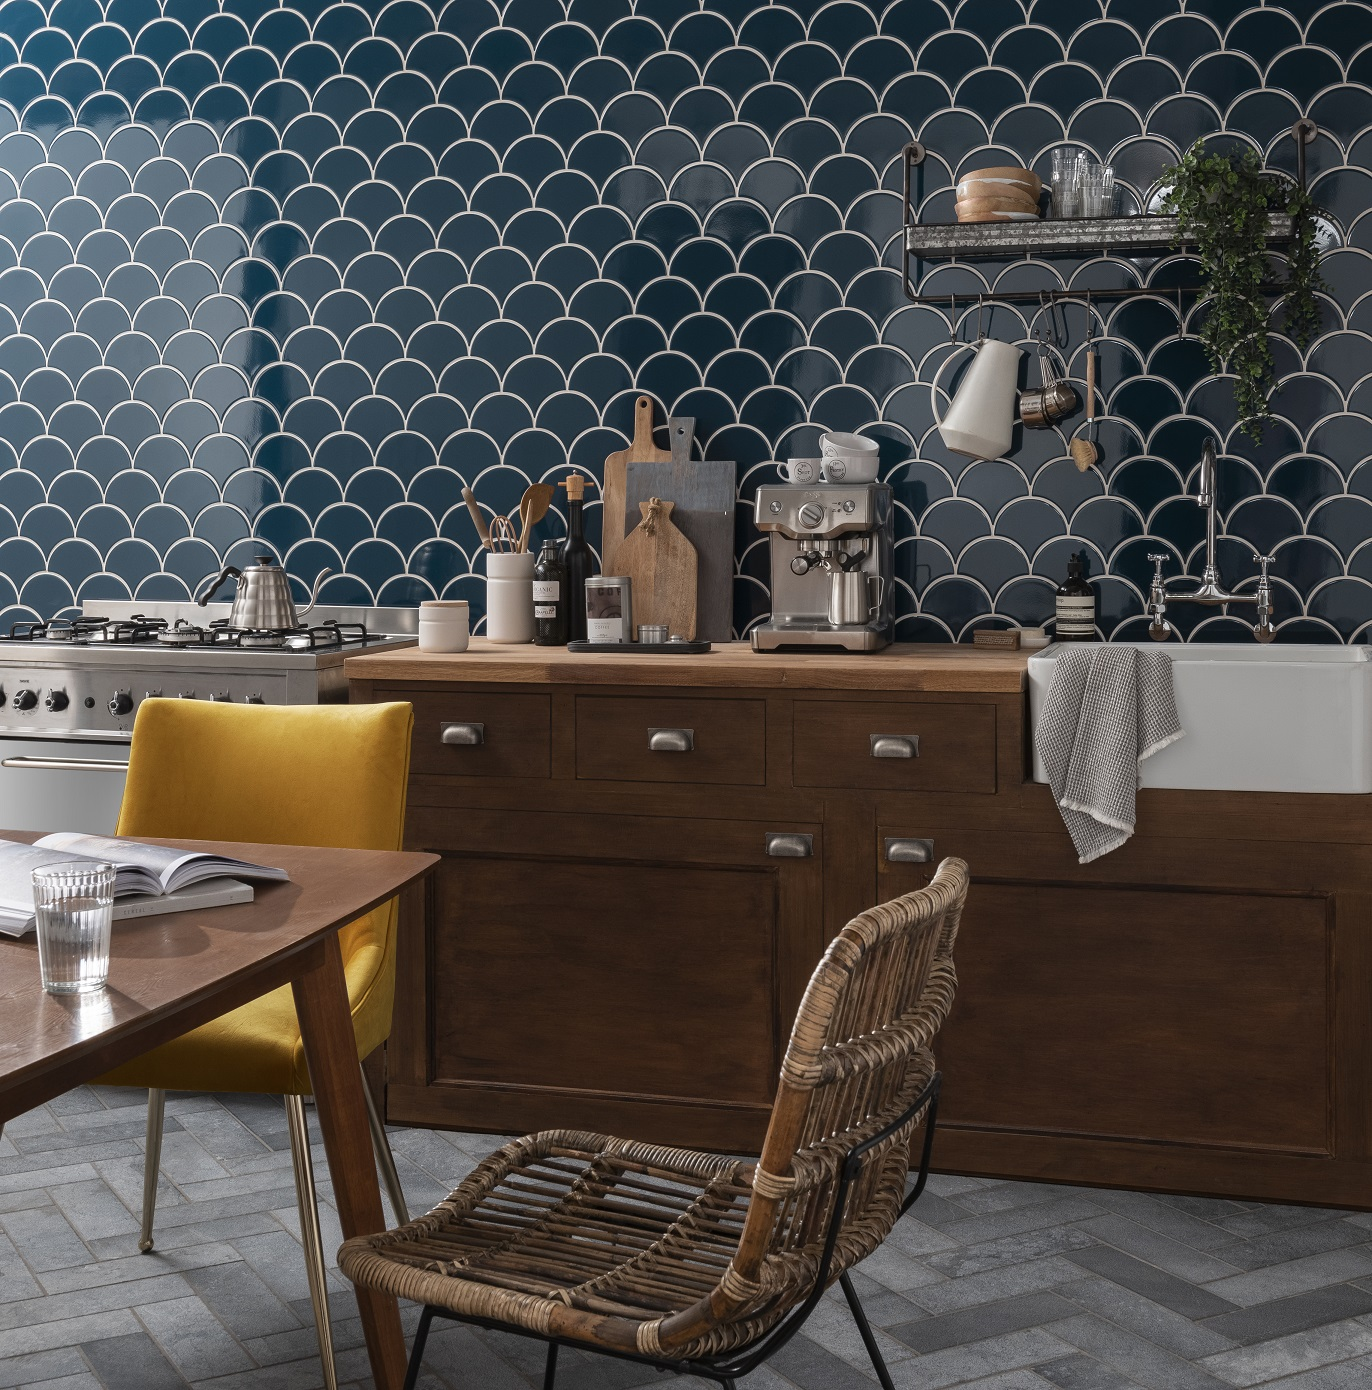 Tile trends are blending modern with traditional for sleek and pretty interior design